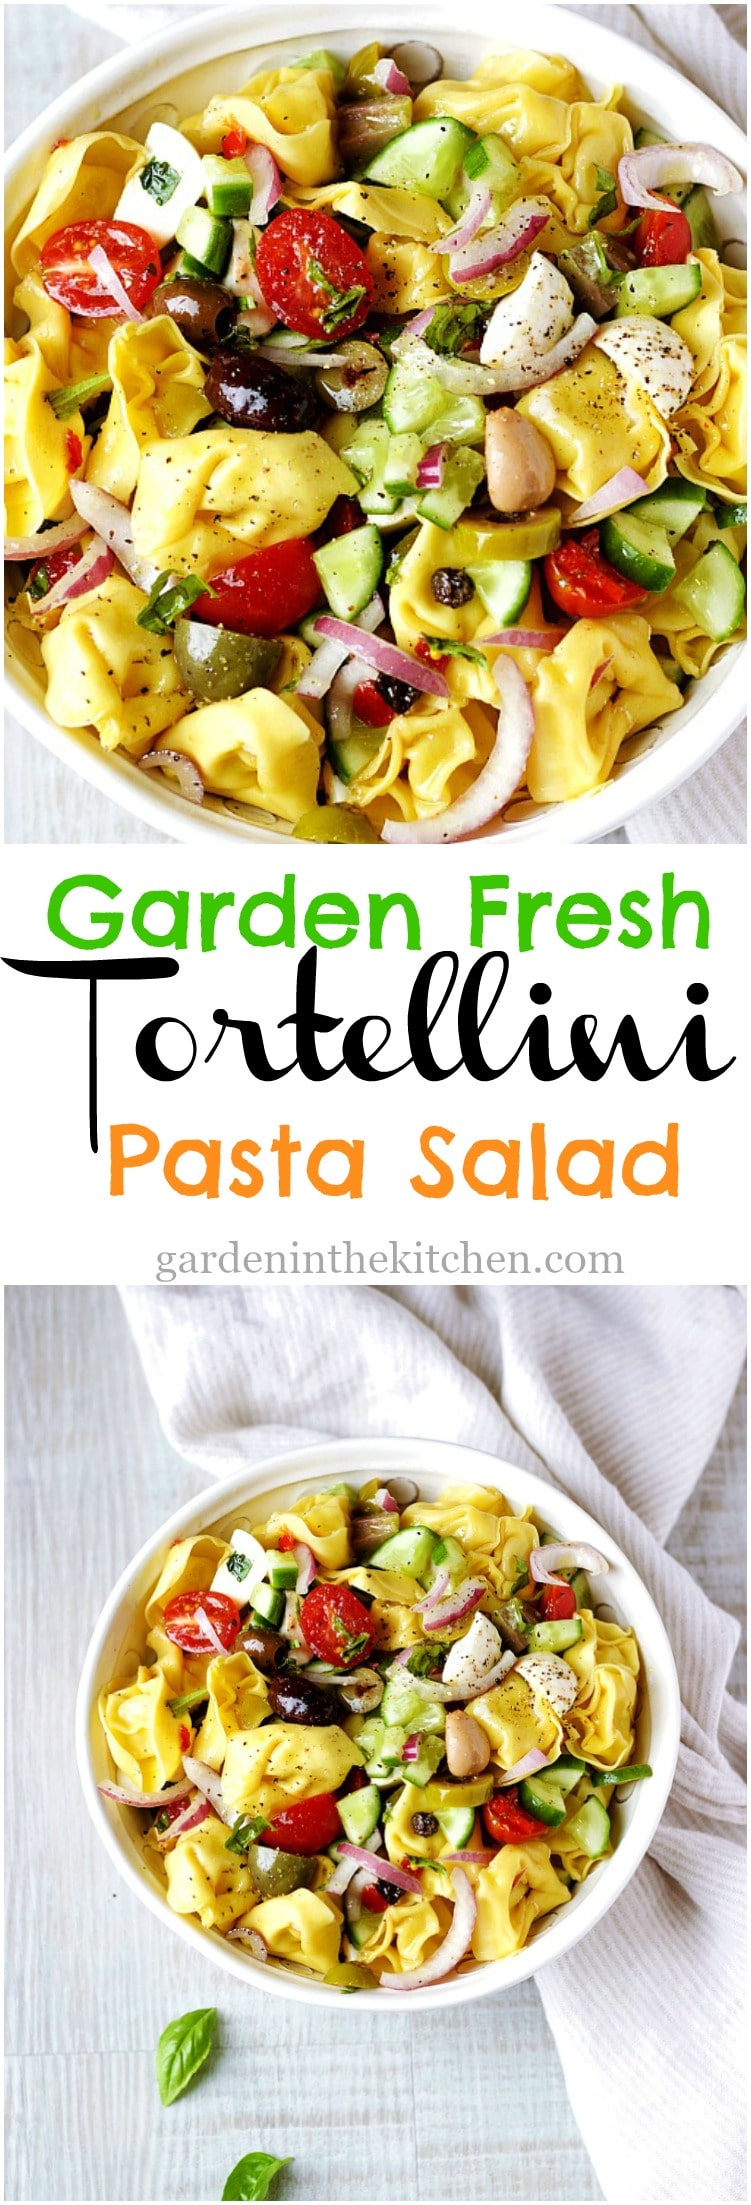 Garden Fresh Tortellini Pasta Salad with fresh veggies, mozzarella cheese and seasoned with a flavorful basil avocado oil dressing! #tortellinipastasalad #pastasalad #tortellini